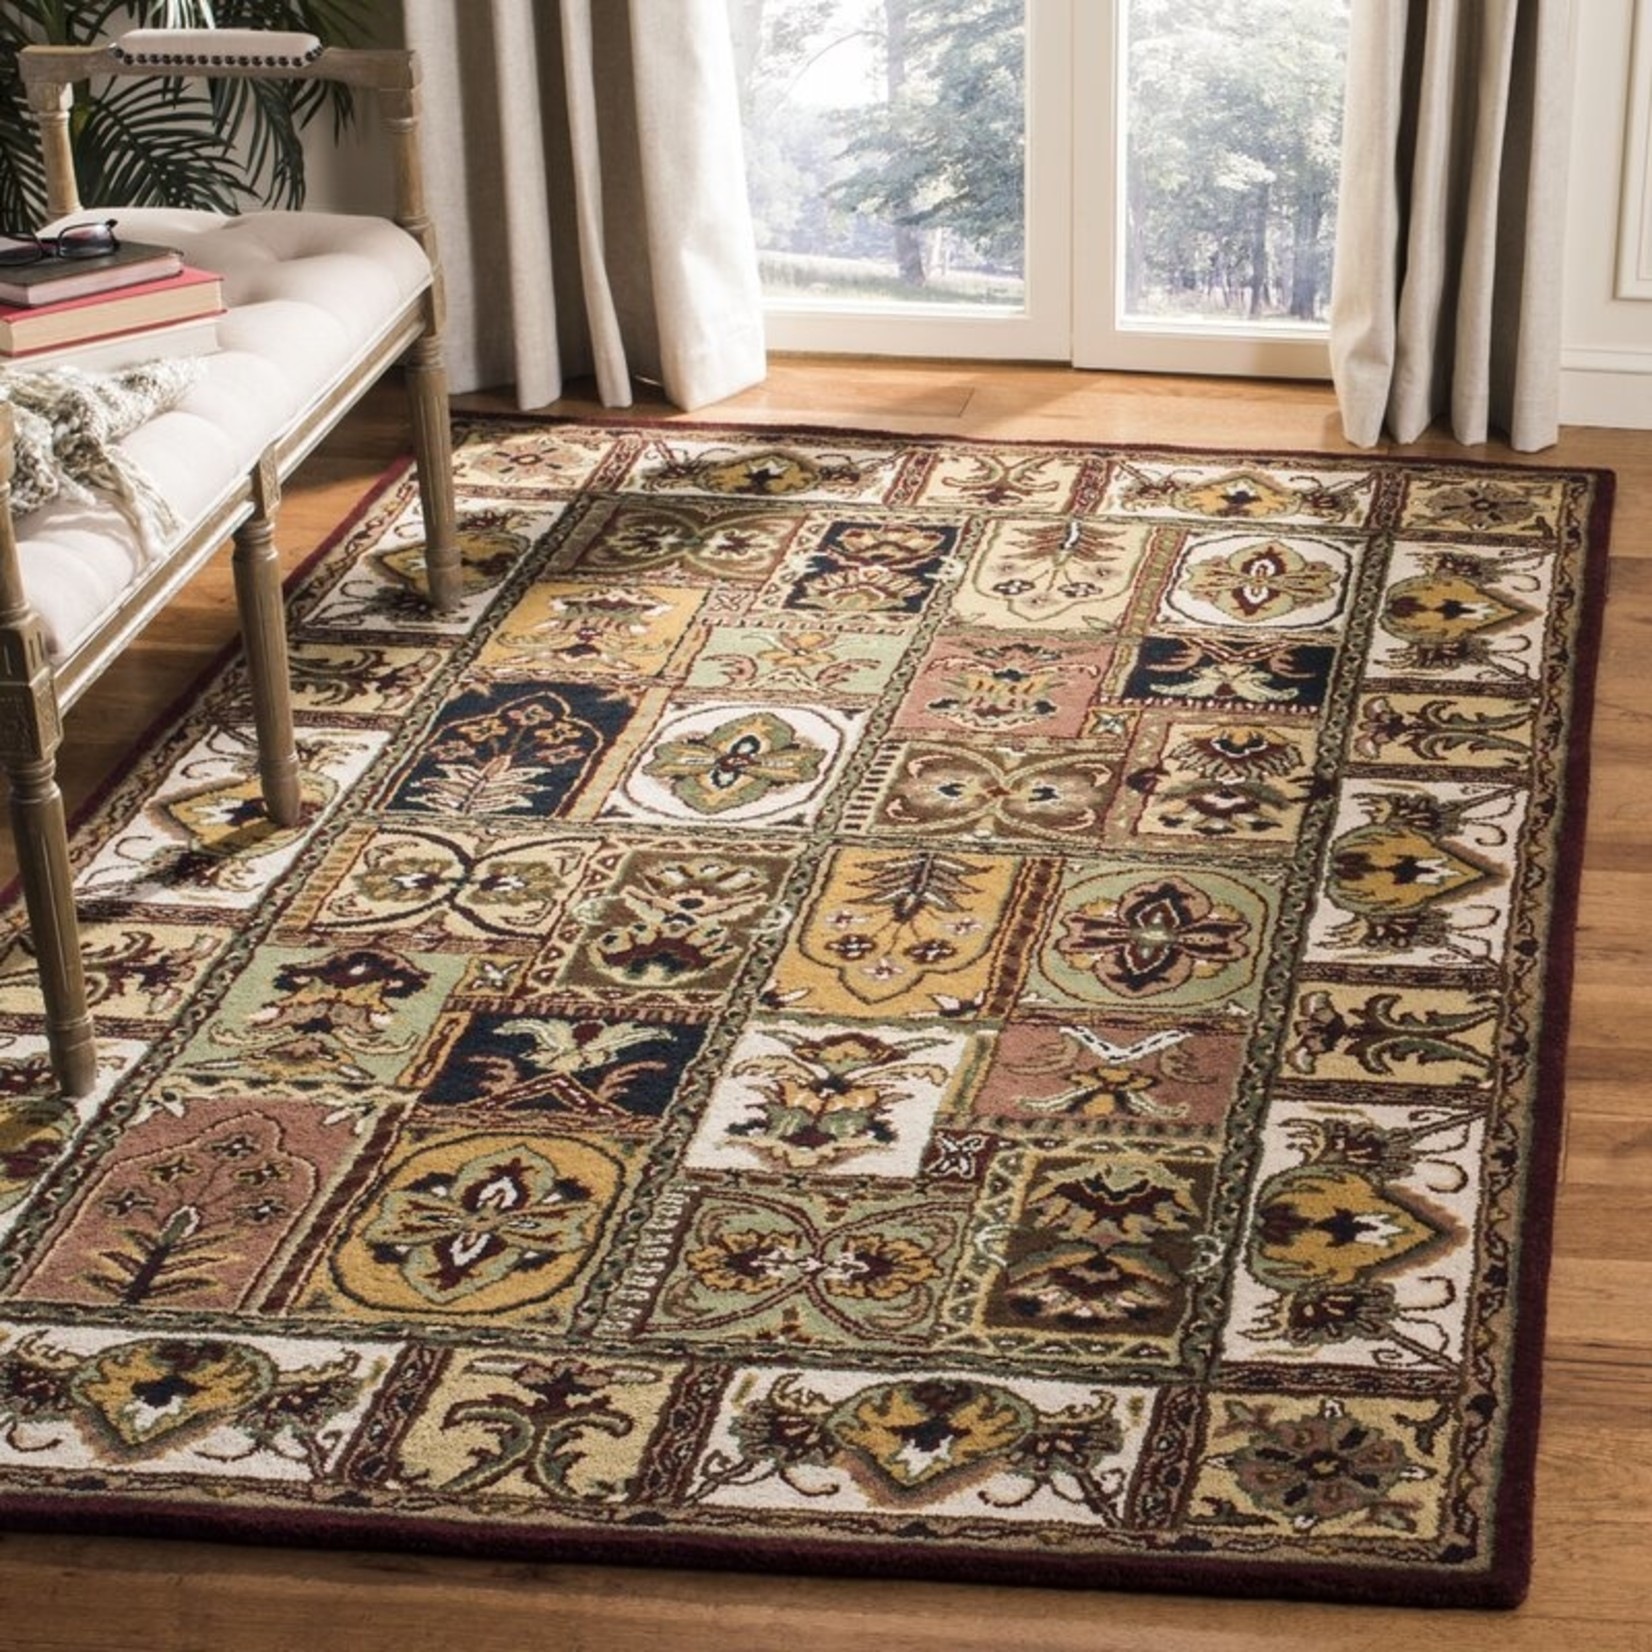 *3' x 5' Chattooga Hand-Tufted Wool Brown/Yellow Area Rug